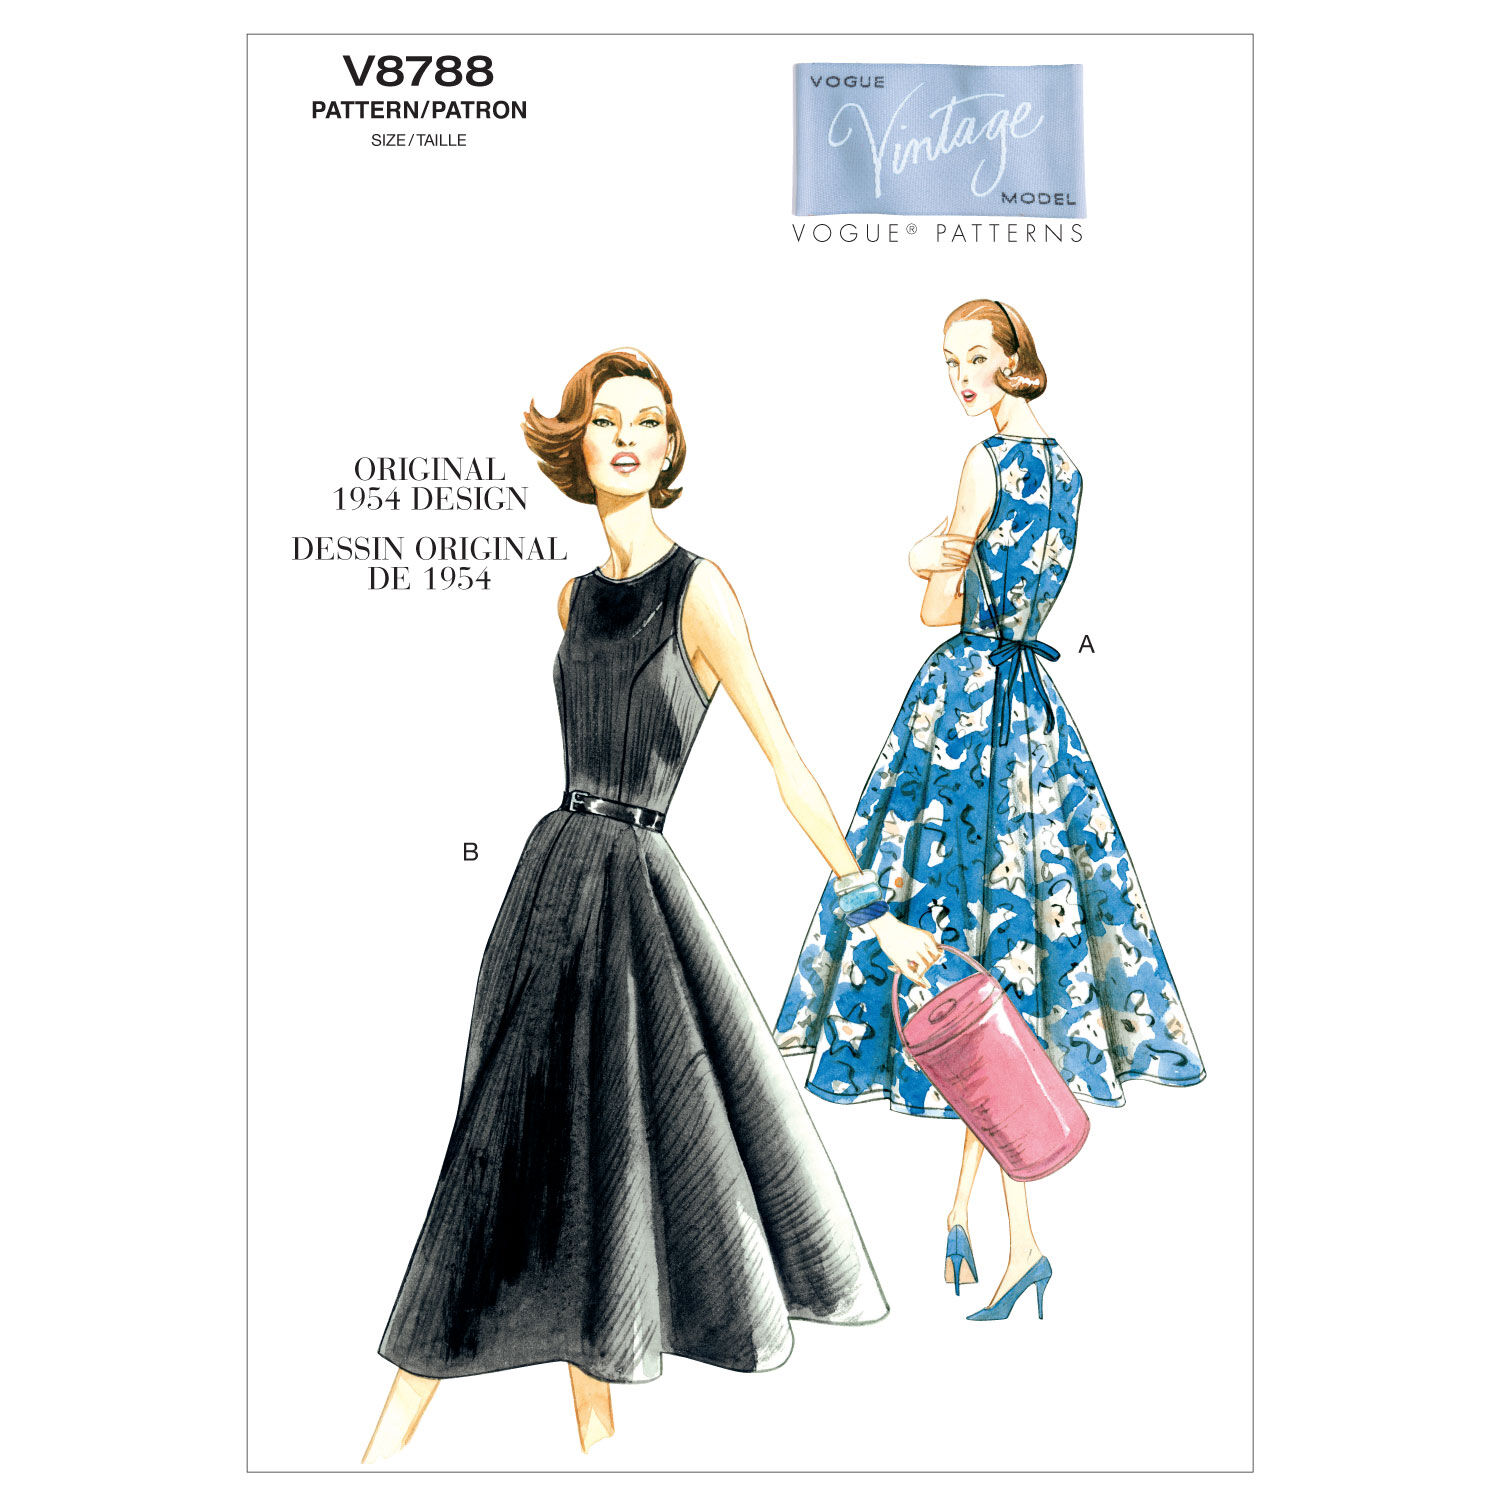 1950s Sewing Patterns | Dresses, Skirts, Tops, Mens 1954 Vogue Patterns Misses Dress - V8788 $16.50 AT vintagedancer.com